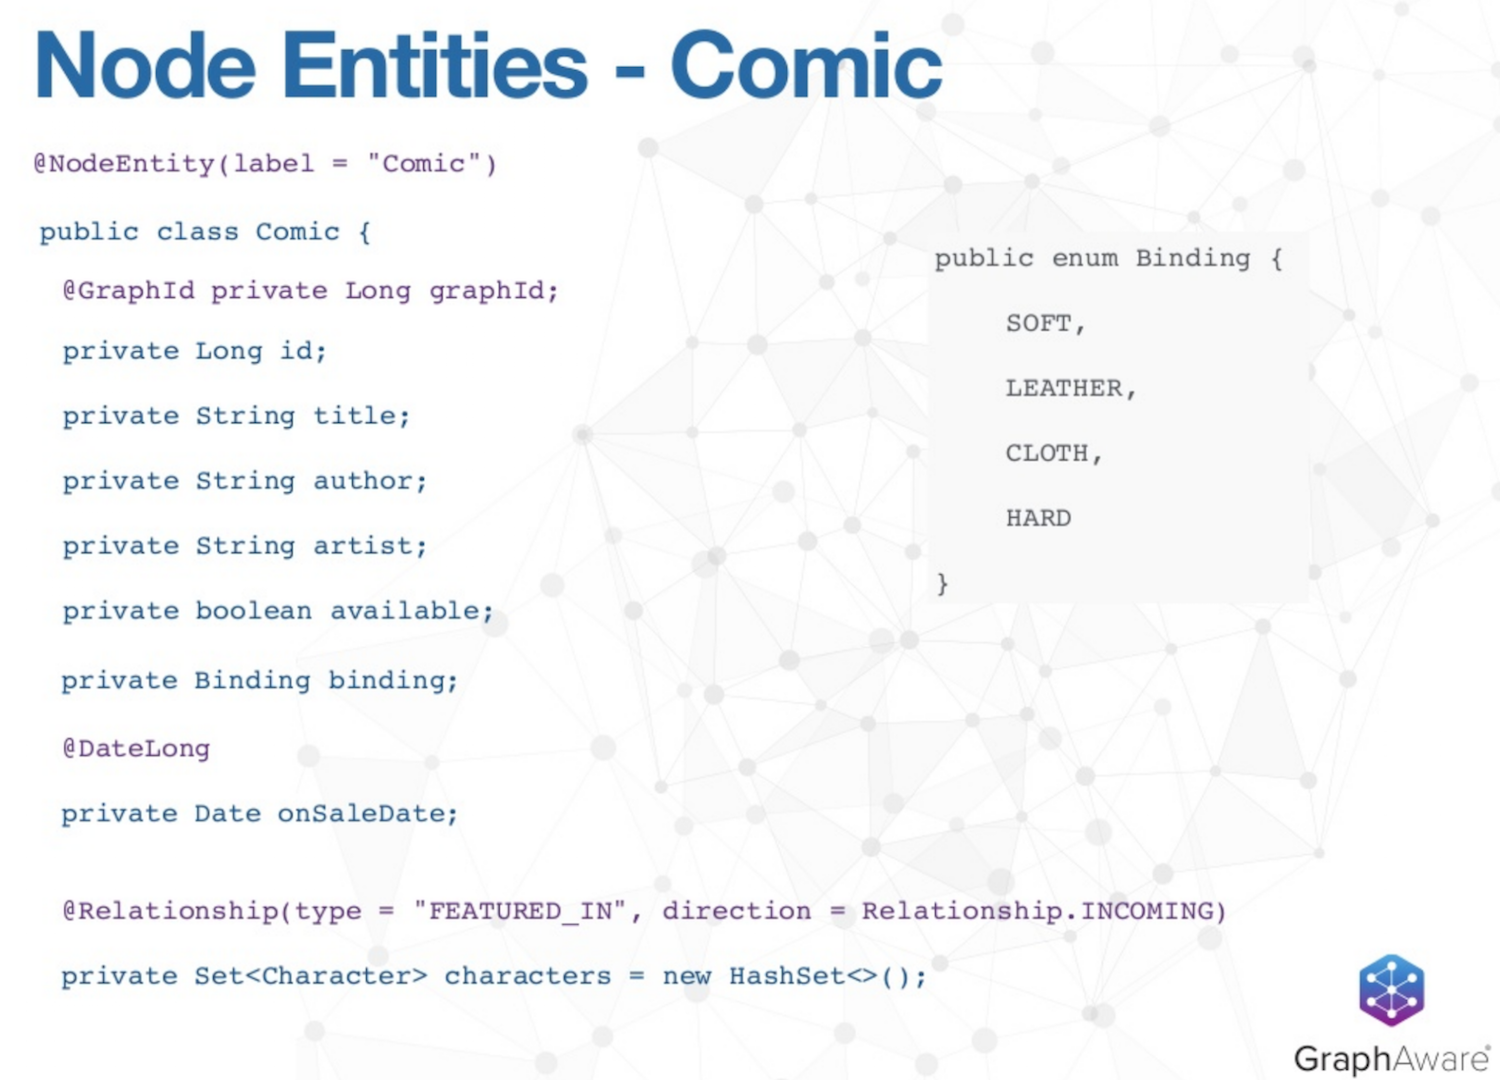 The Node Entities of Each Comic in our Example Spring Data Neo4j 4.1 Application